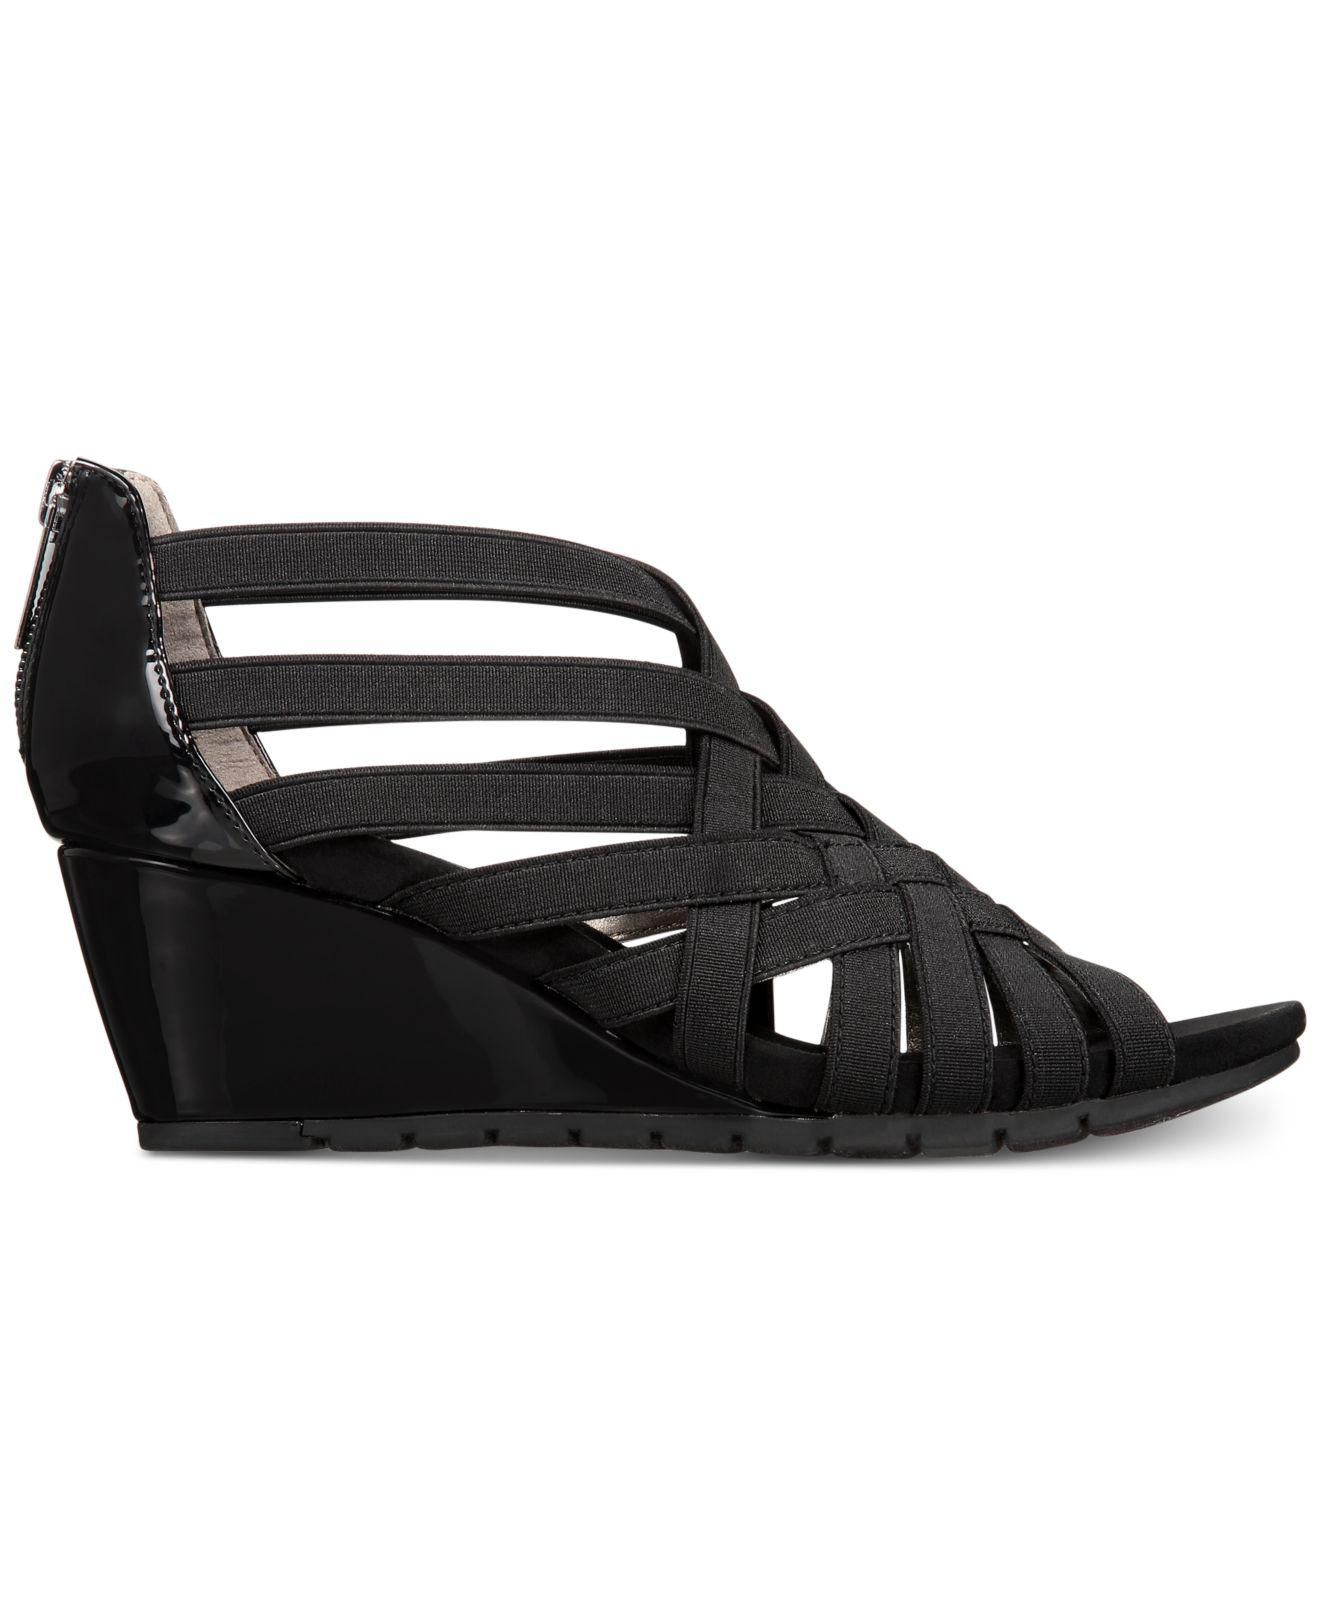 bbd820516e Lyst - Bandolino Gillmiro Strappy Wedge Sandals in Black